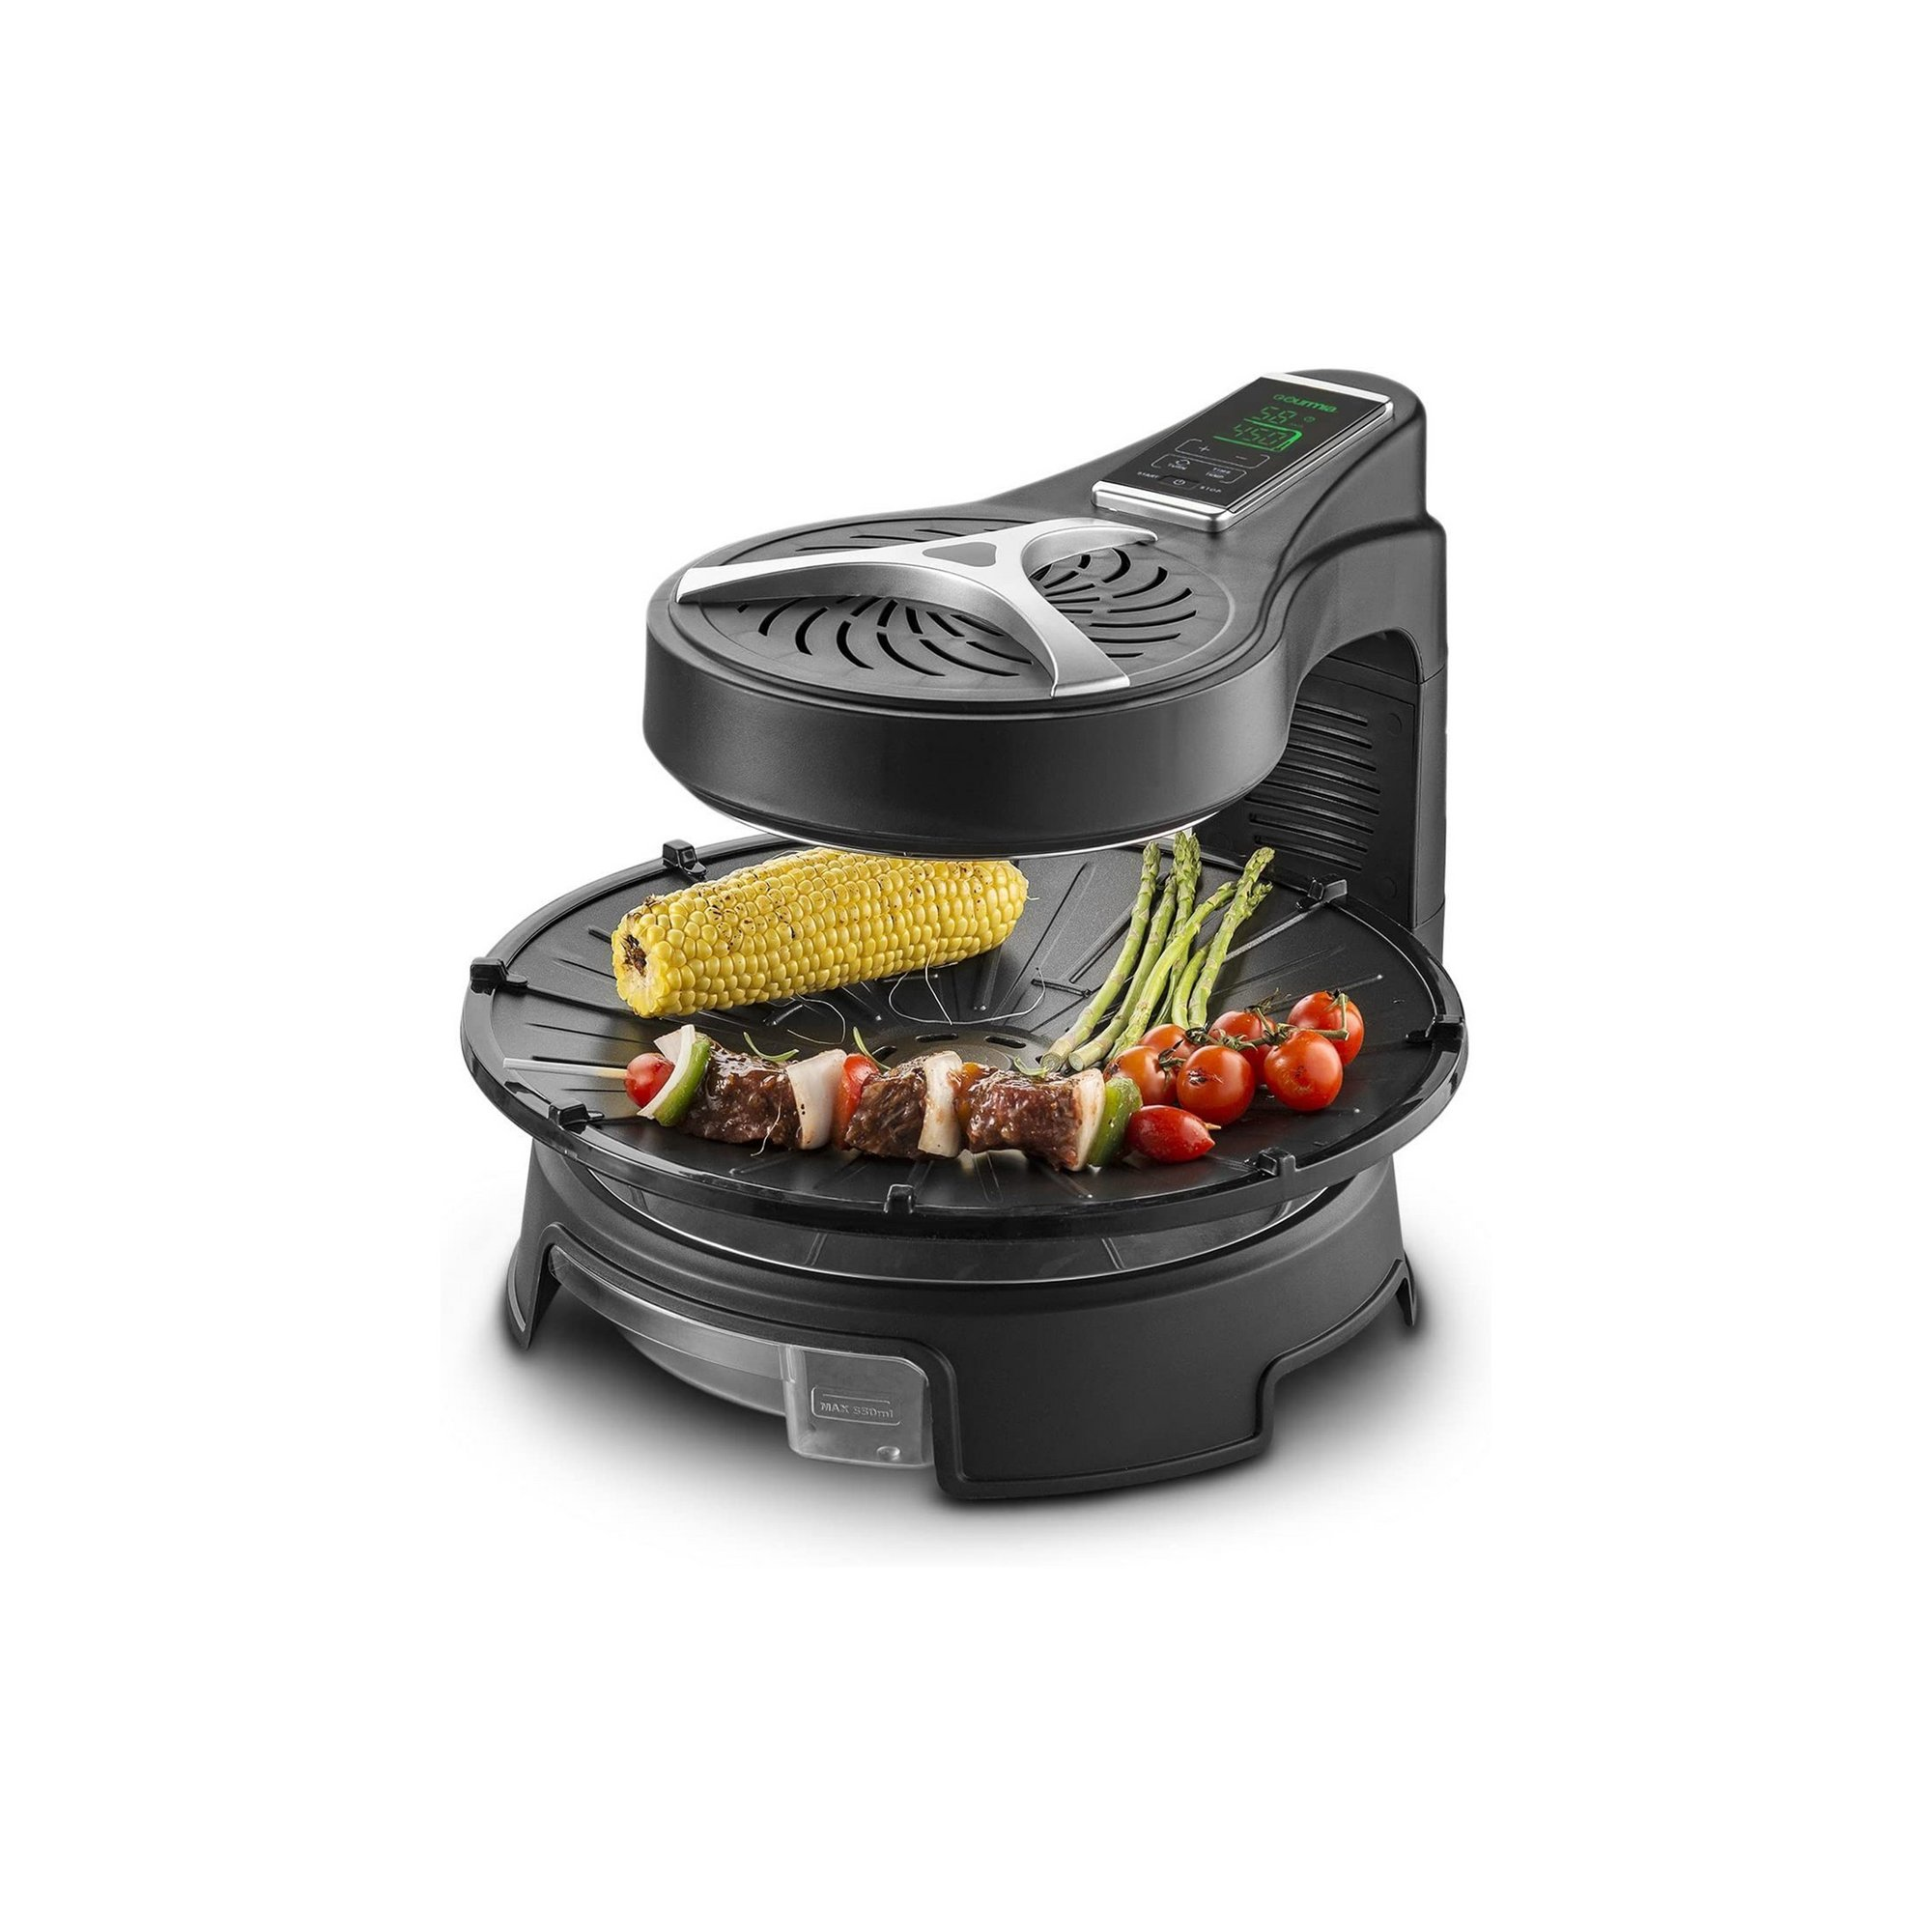 Image of Gourmia Halo Grill Halogen Powered